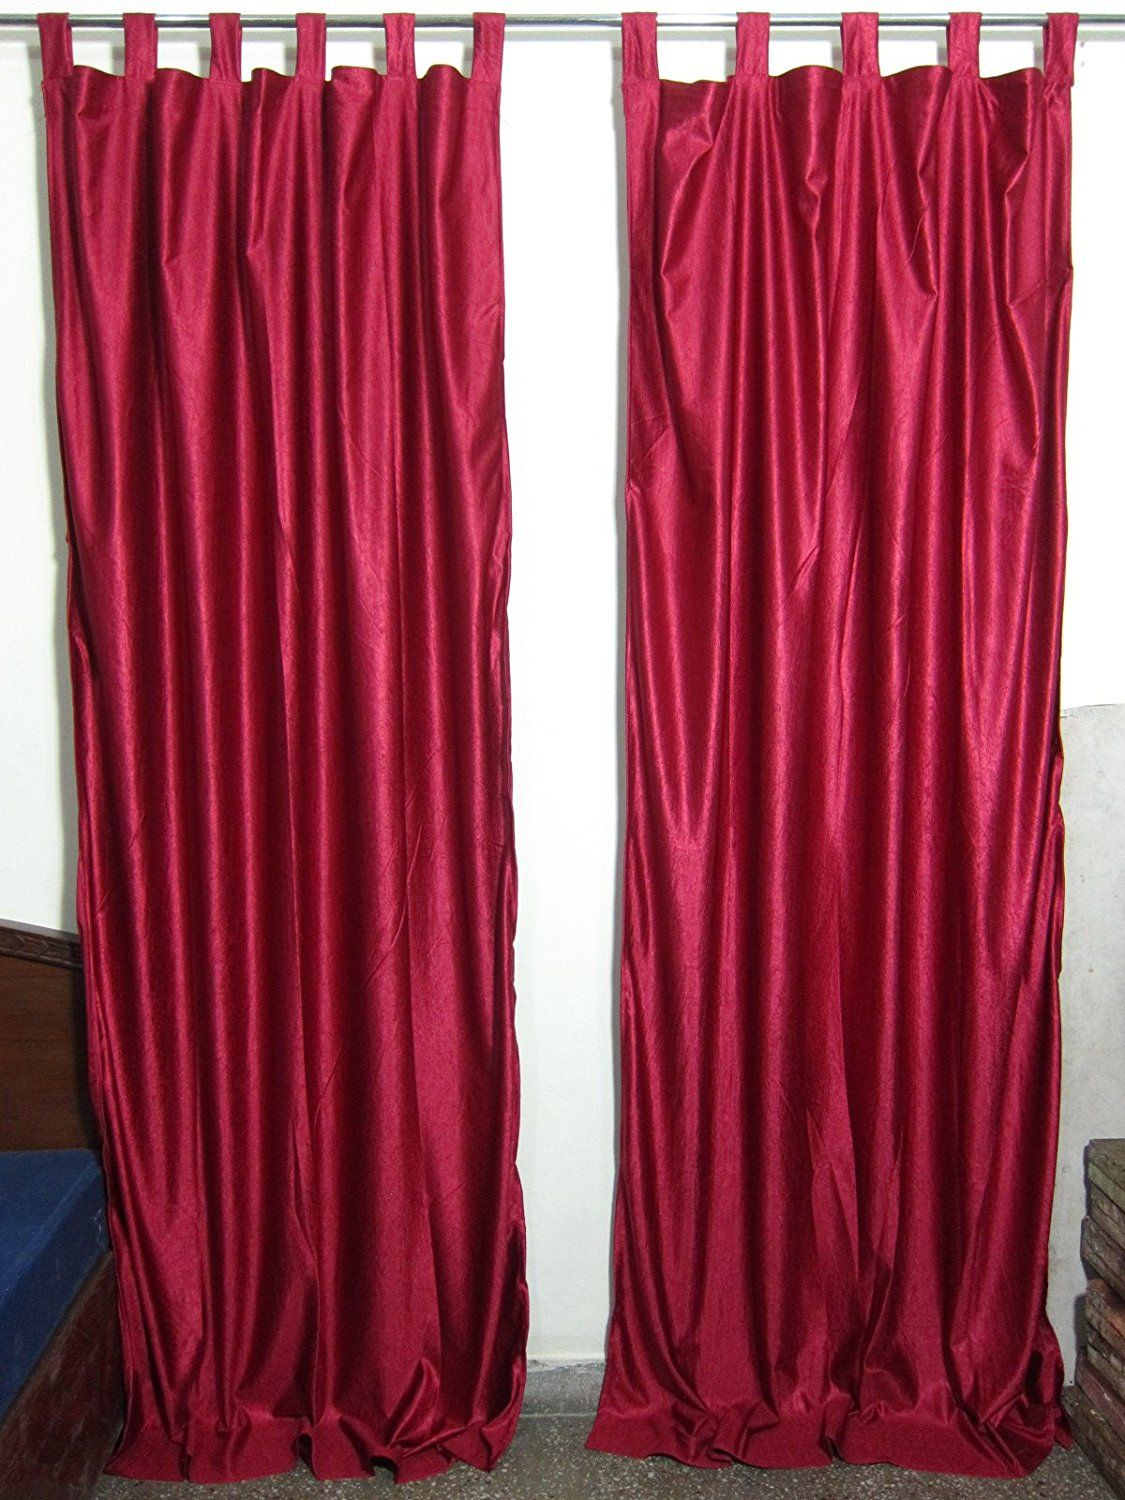 Mogul Interior Indian Sari Curtains Maroon Tab Top Drape Panel Pair Window Treatment Ideas